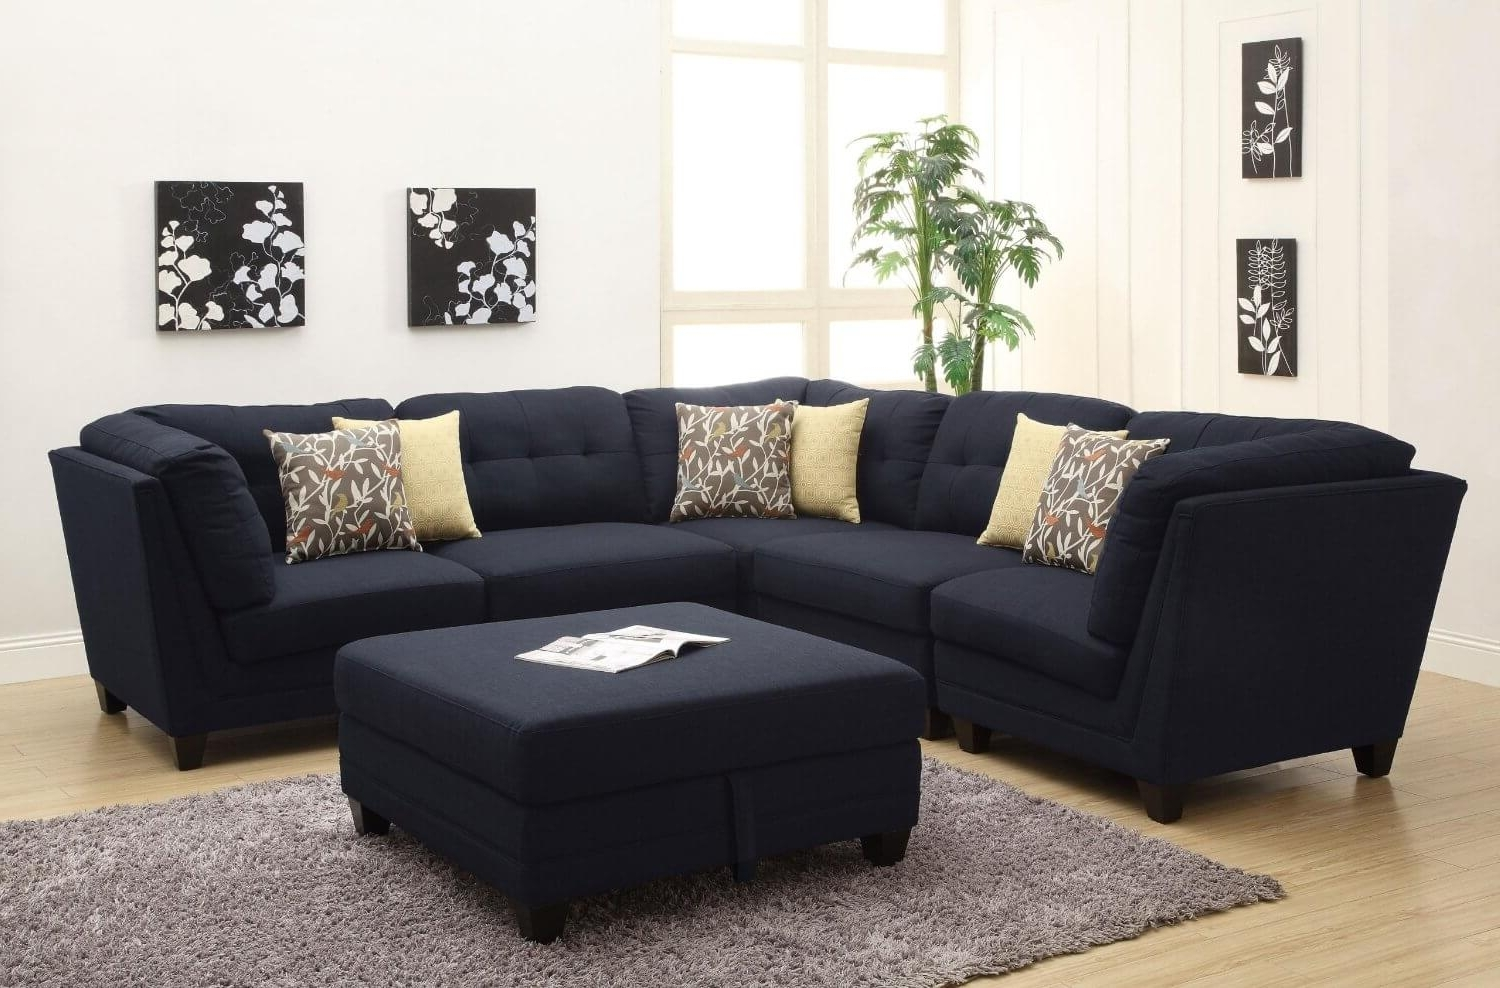 Best And Newest 100 Awesome Sectional Sofas Under $1,000 (2018) With Mid Range Sofas (View 7 of 20)